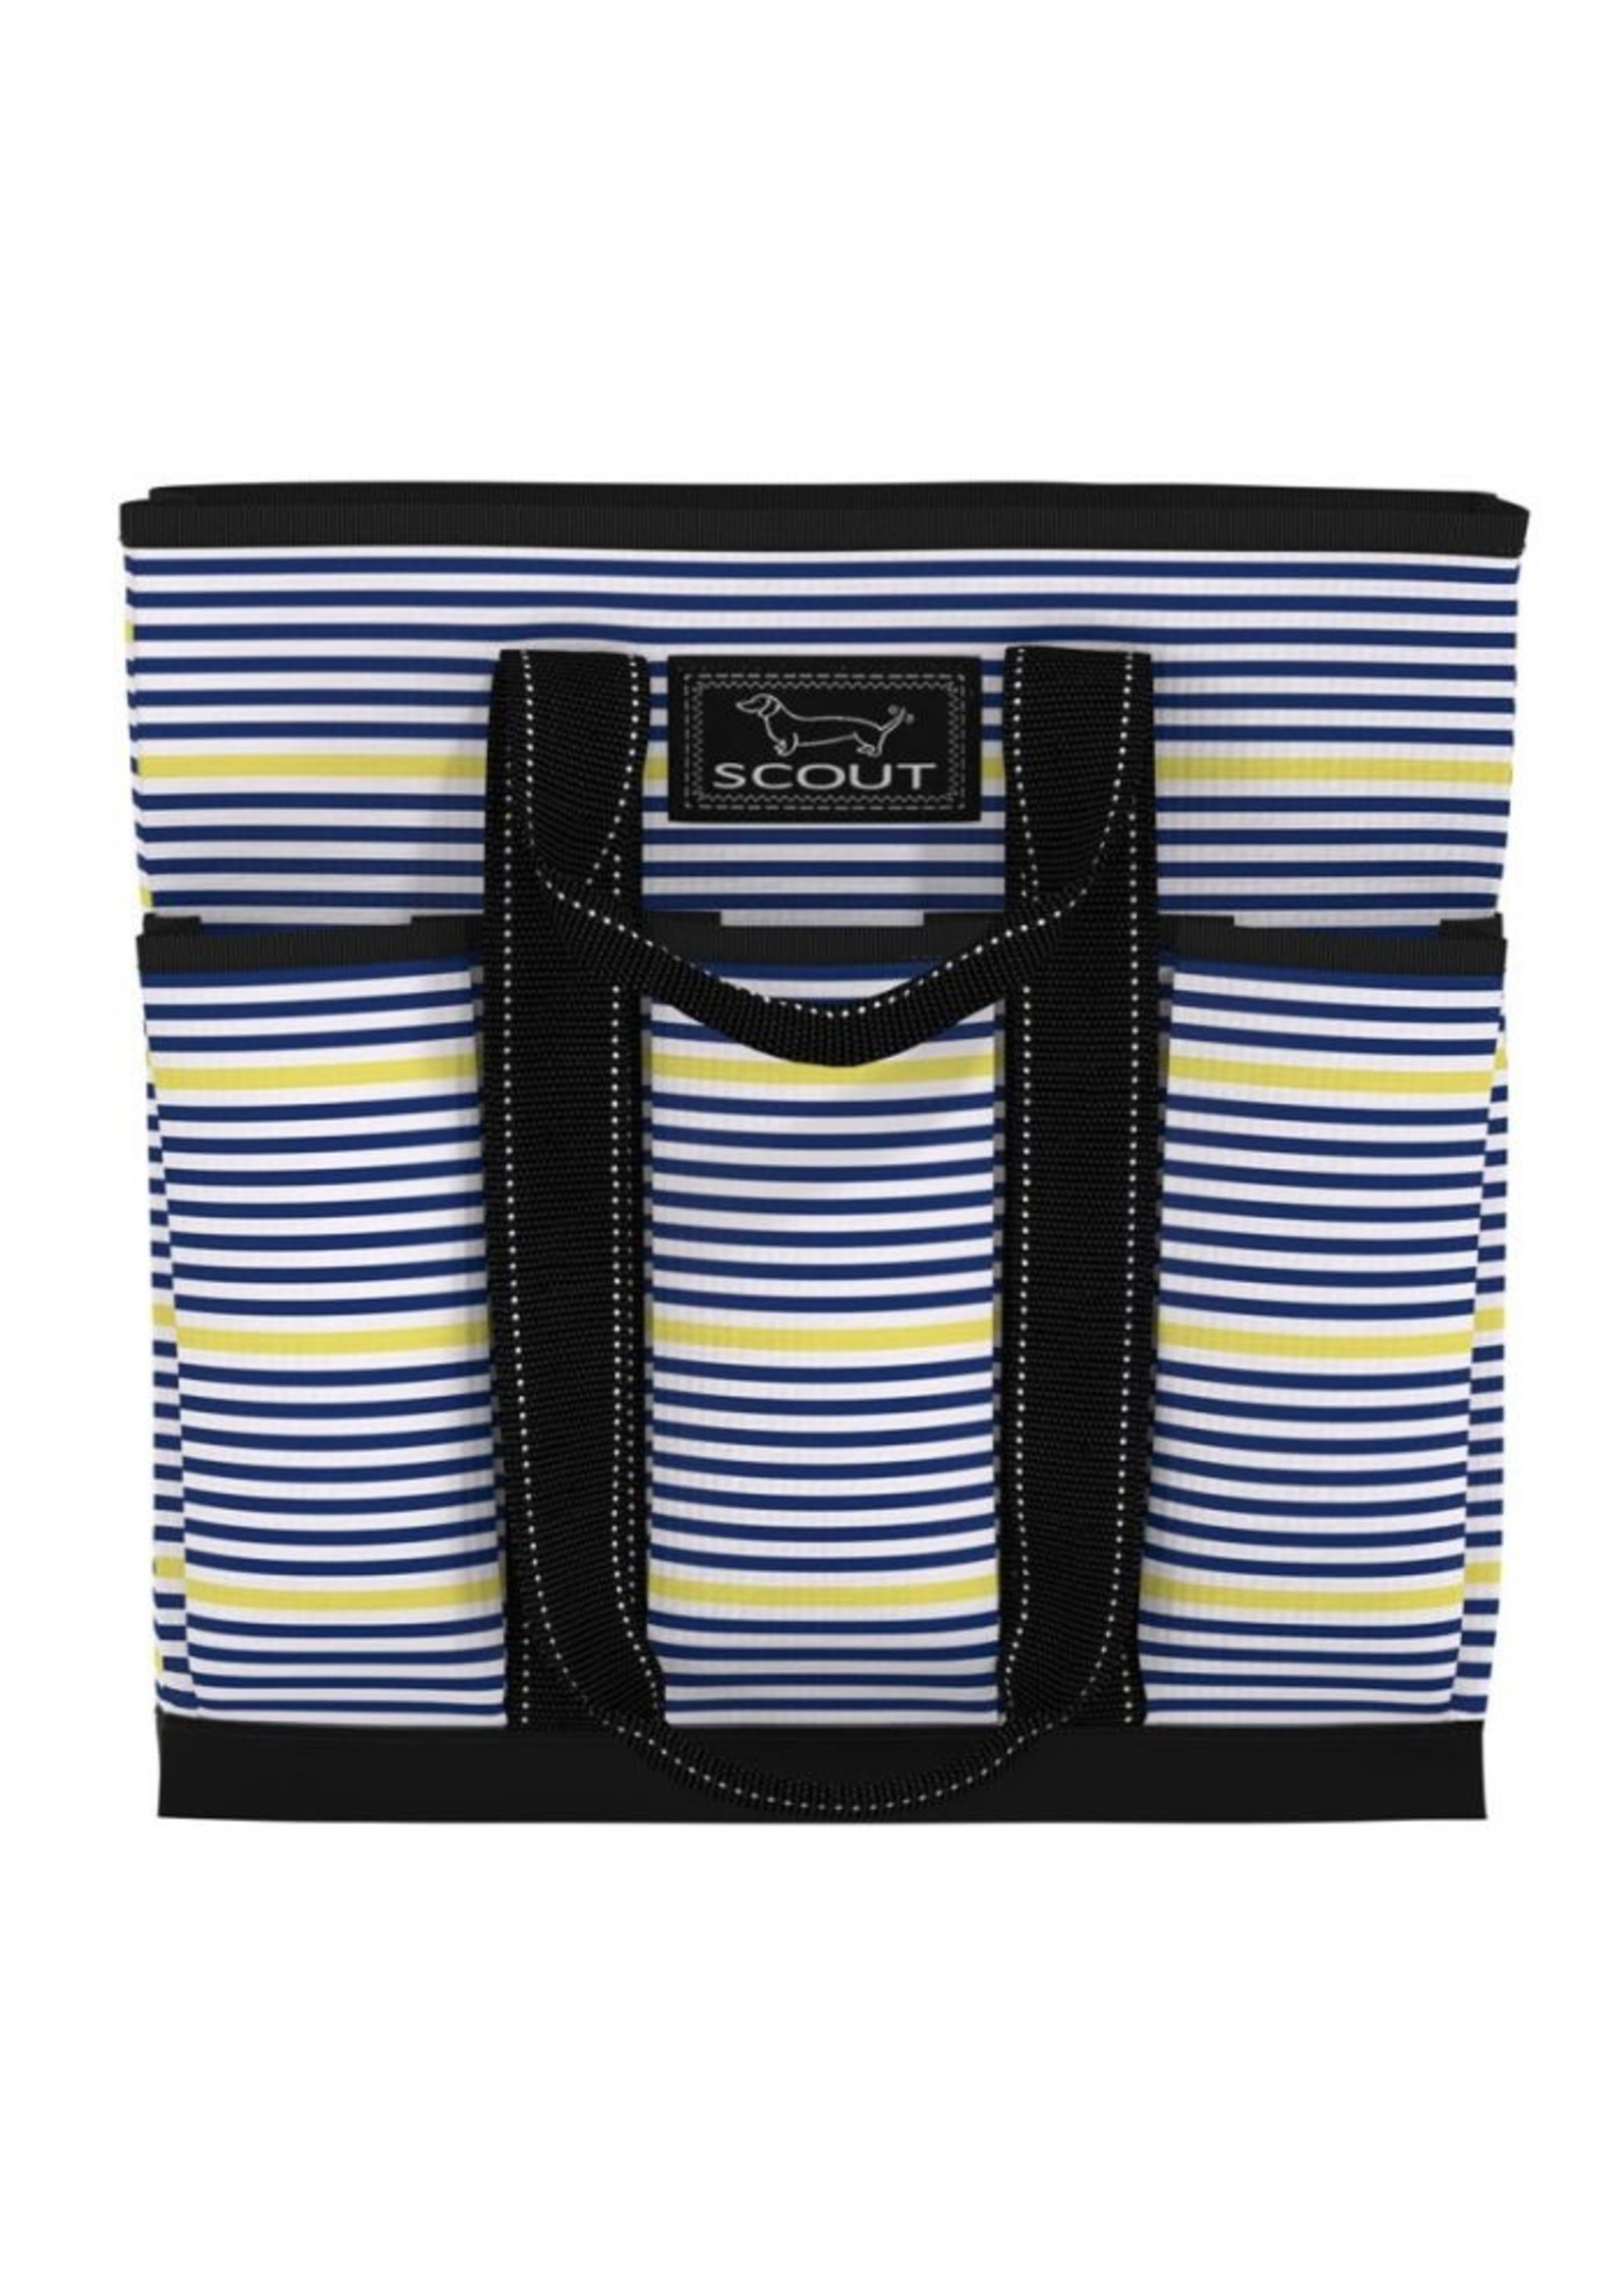 scout by bungalow Scout Pocket Rocket Sun Rays